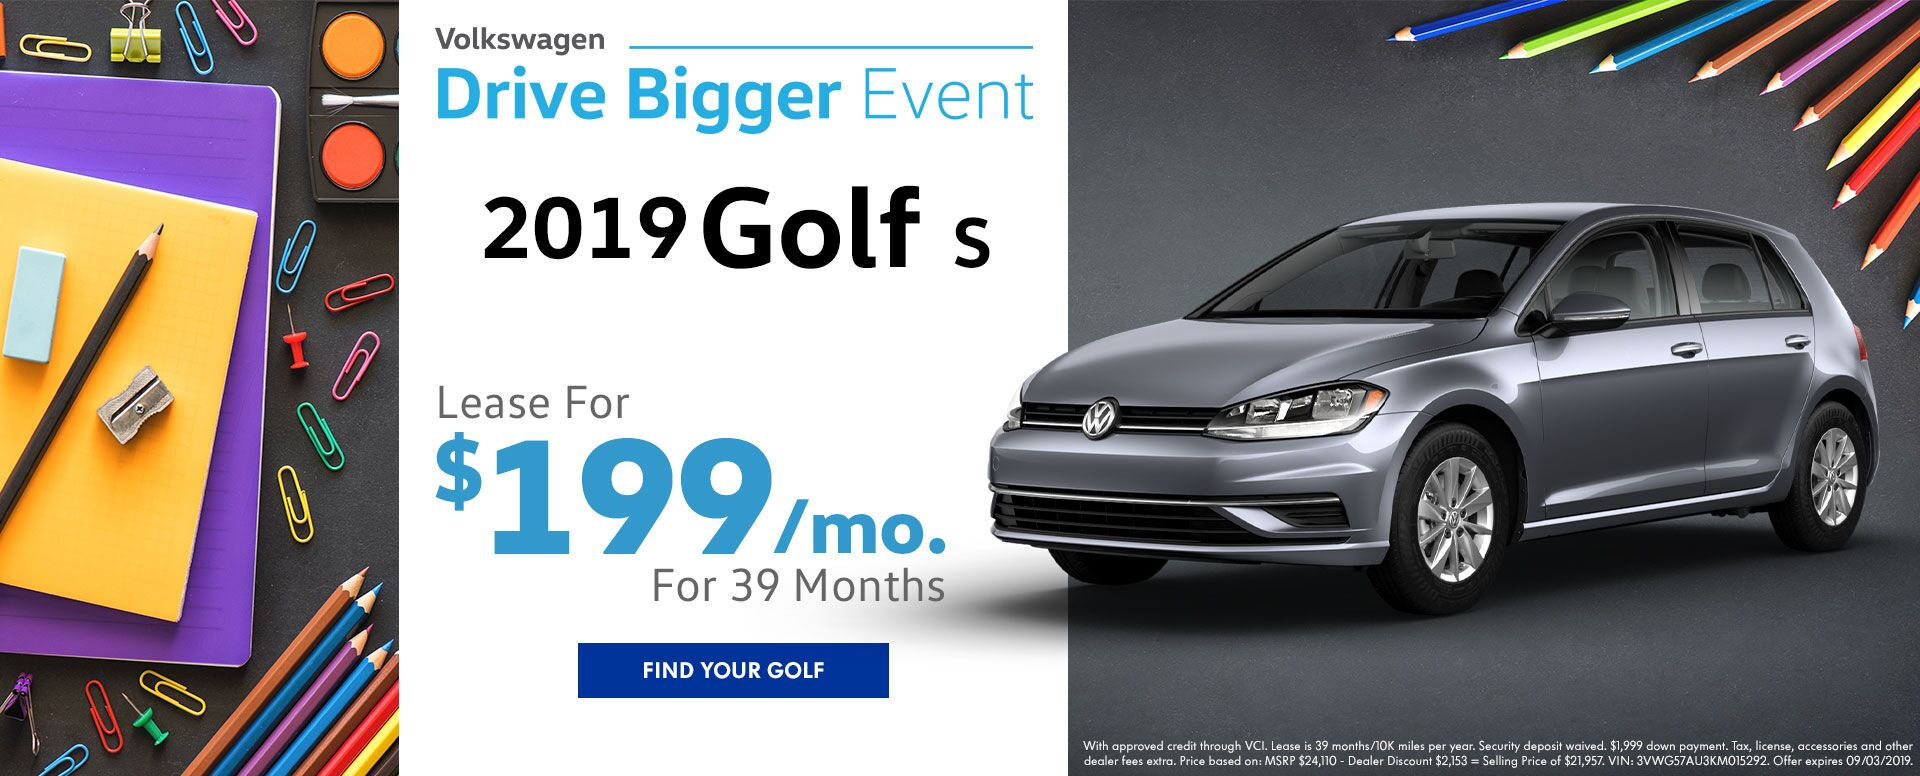 2019 Golf Lease Offer